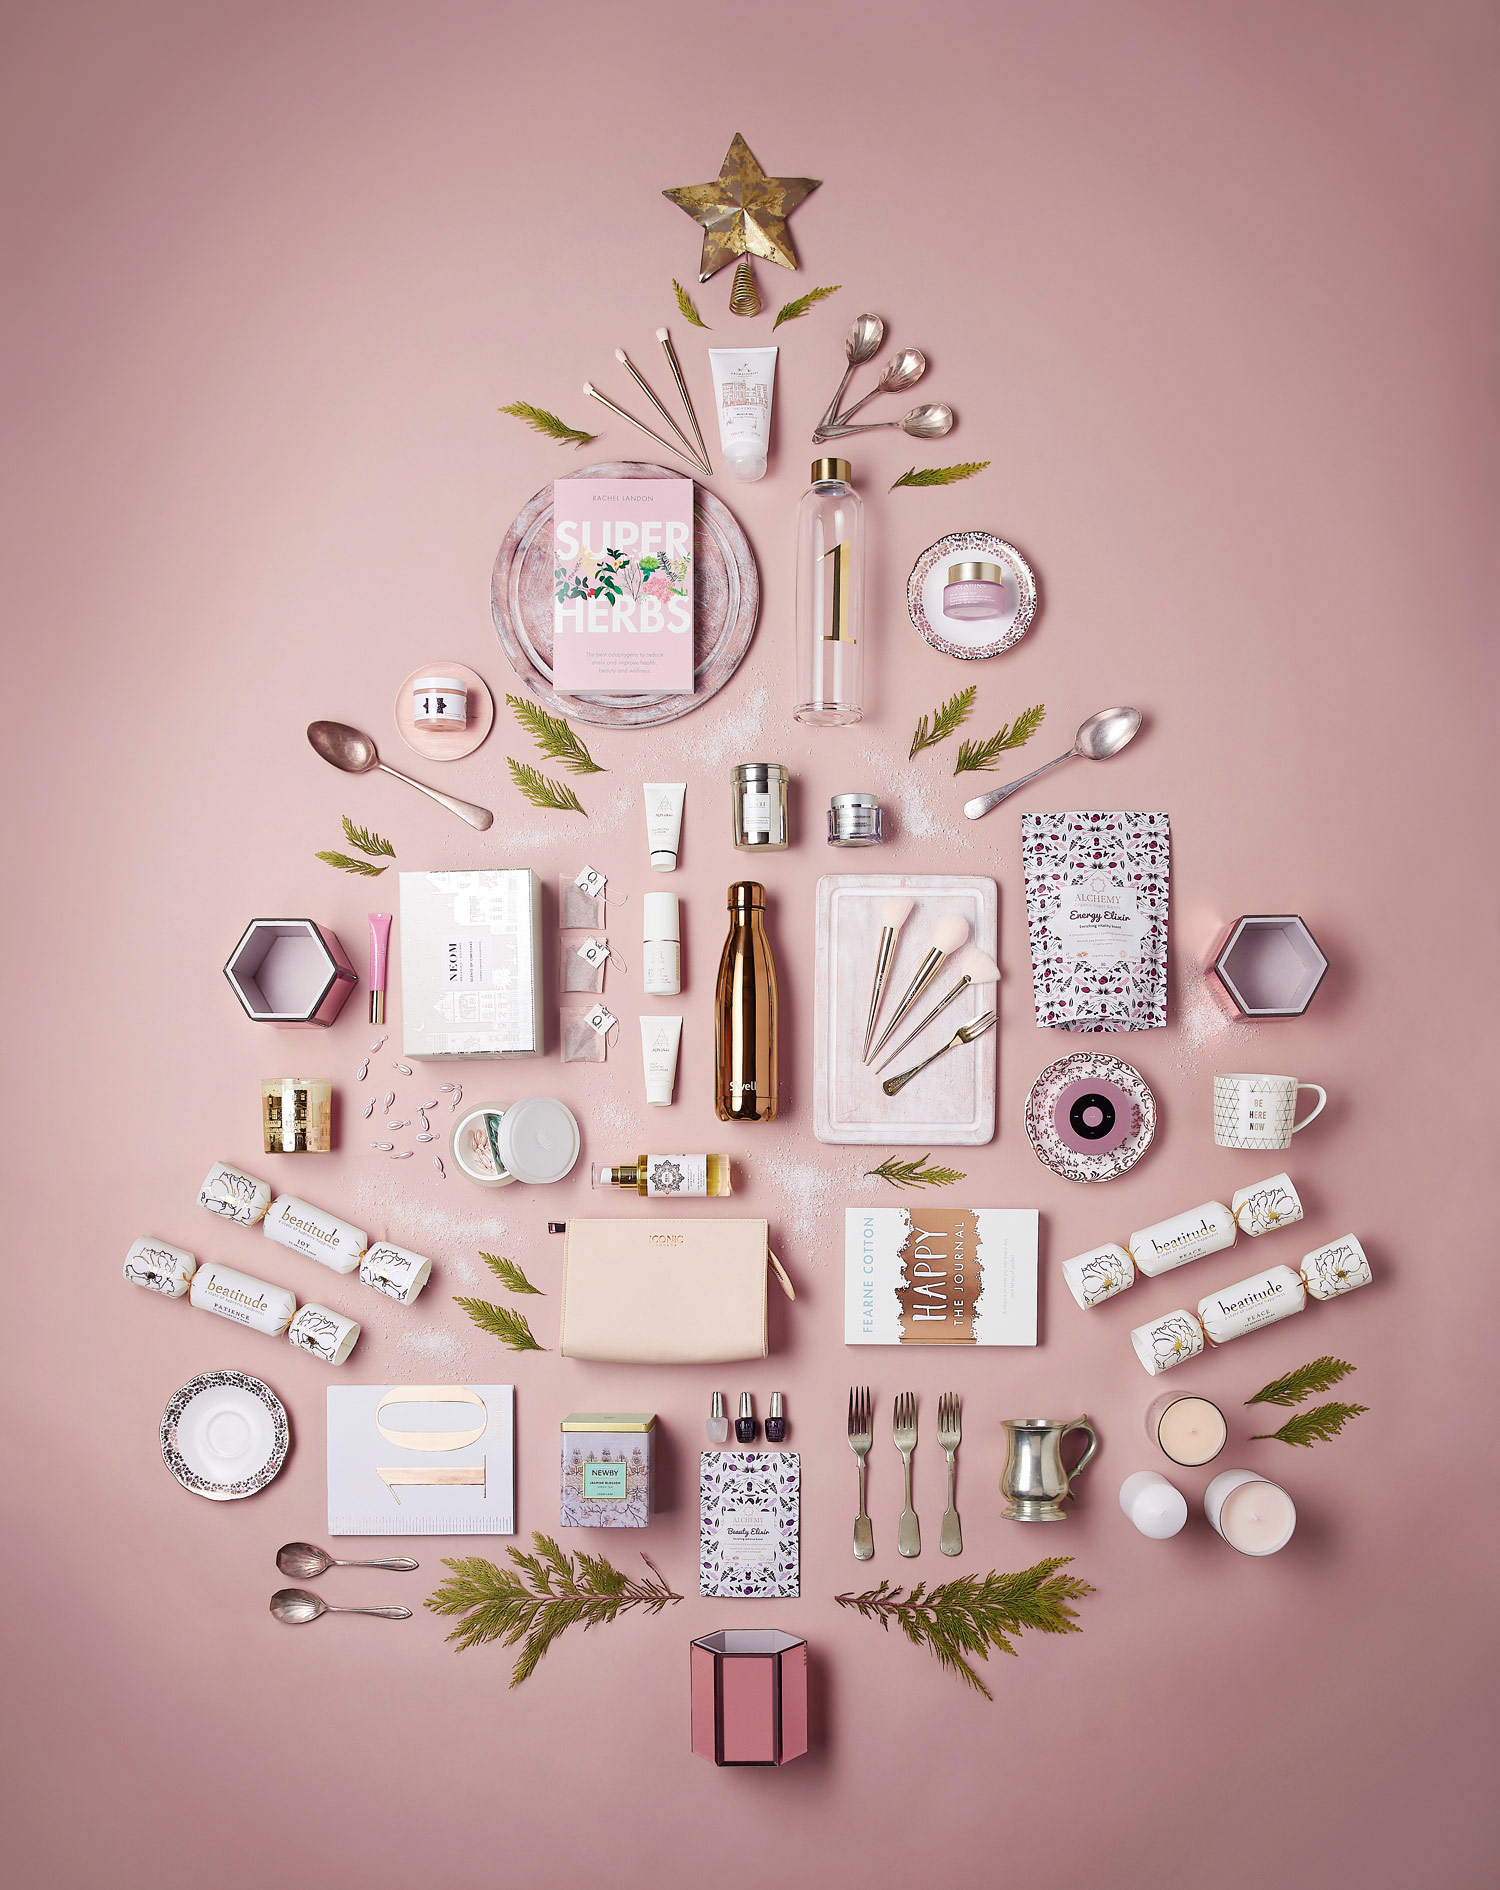 Christmas beauty products arranged in a Christmas Tree shape on a pink background